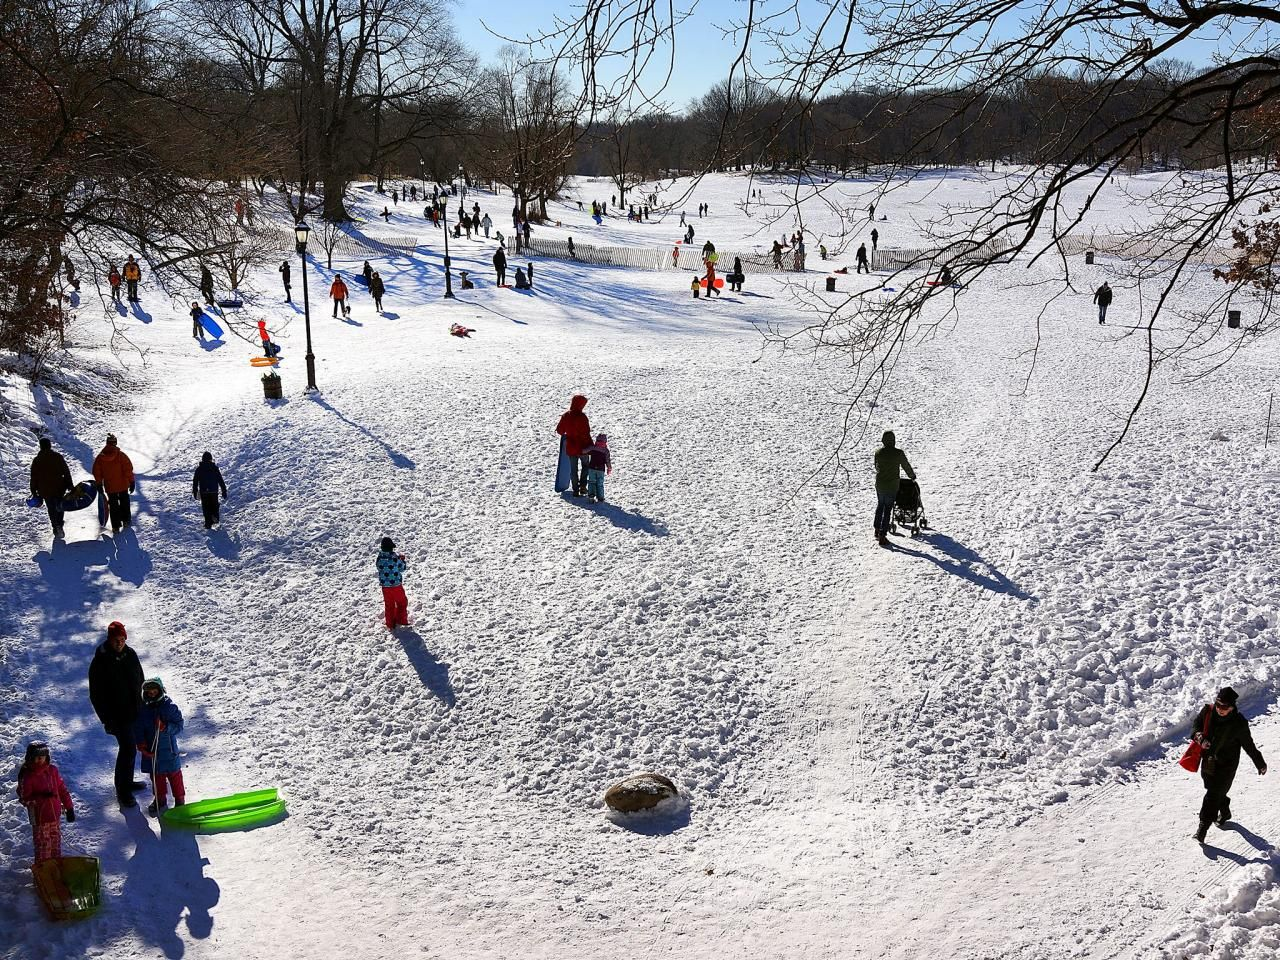 If weather trends stay on course for New York City, you'll want to prepare yourself for some major snow this holiday season. Take advantage of the wintery weather and join the fun at any of the dozen local parks for some sledding! Prospect Park in Brooklyn (pictured here) or Central Park in Manhattan are classic locations to enjoy some slip-sliding fun.